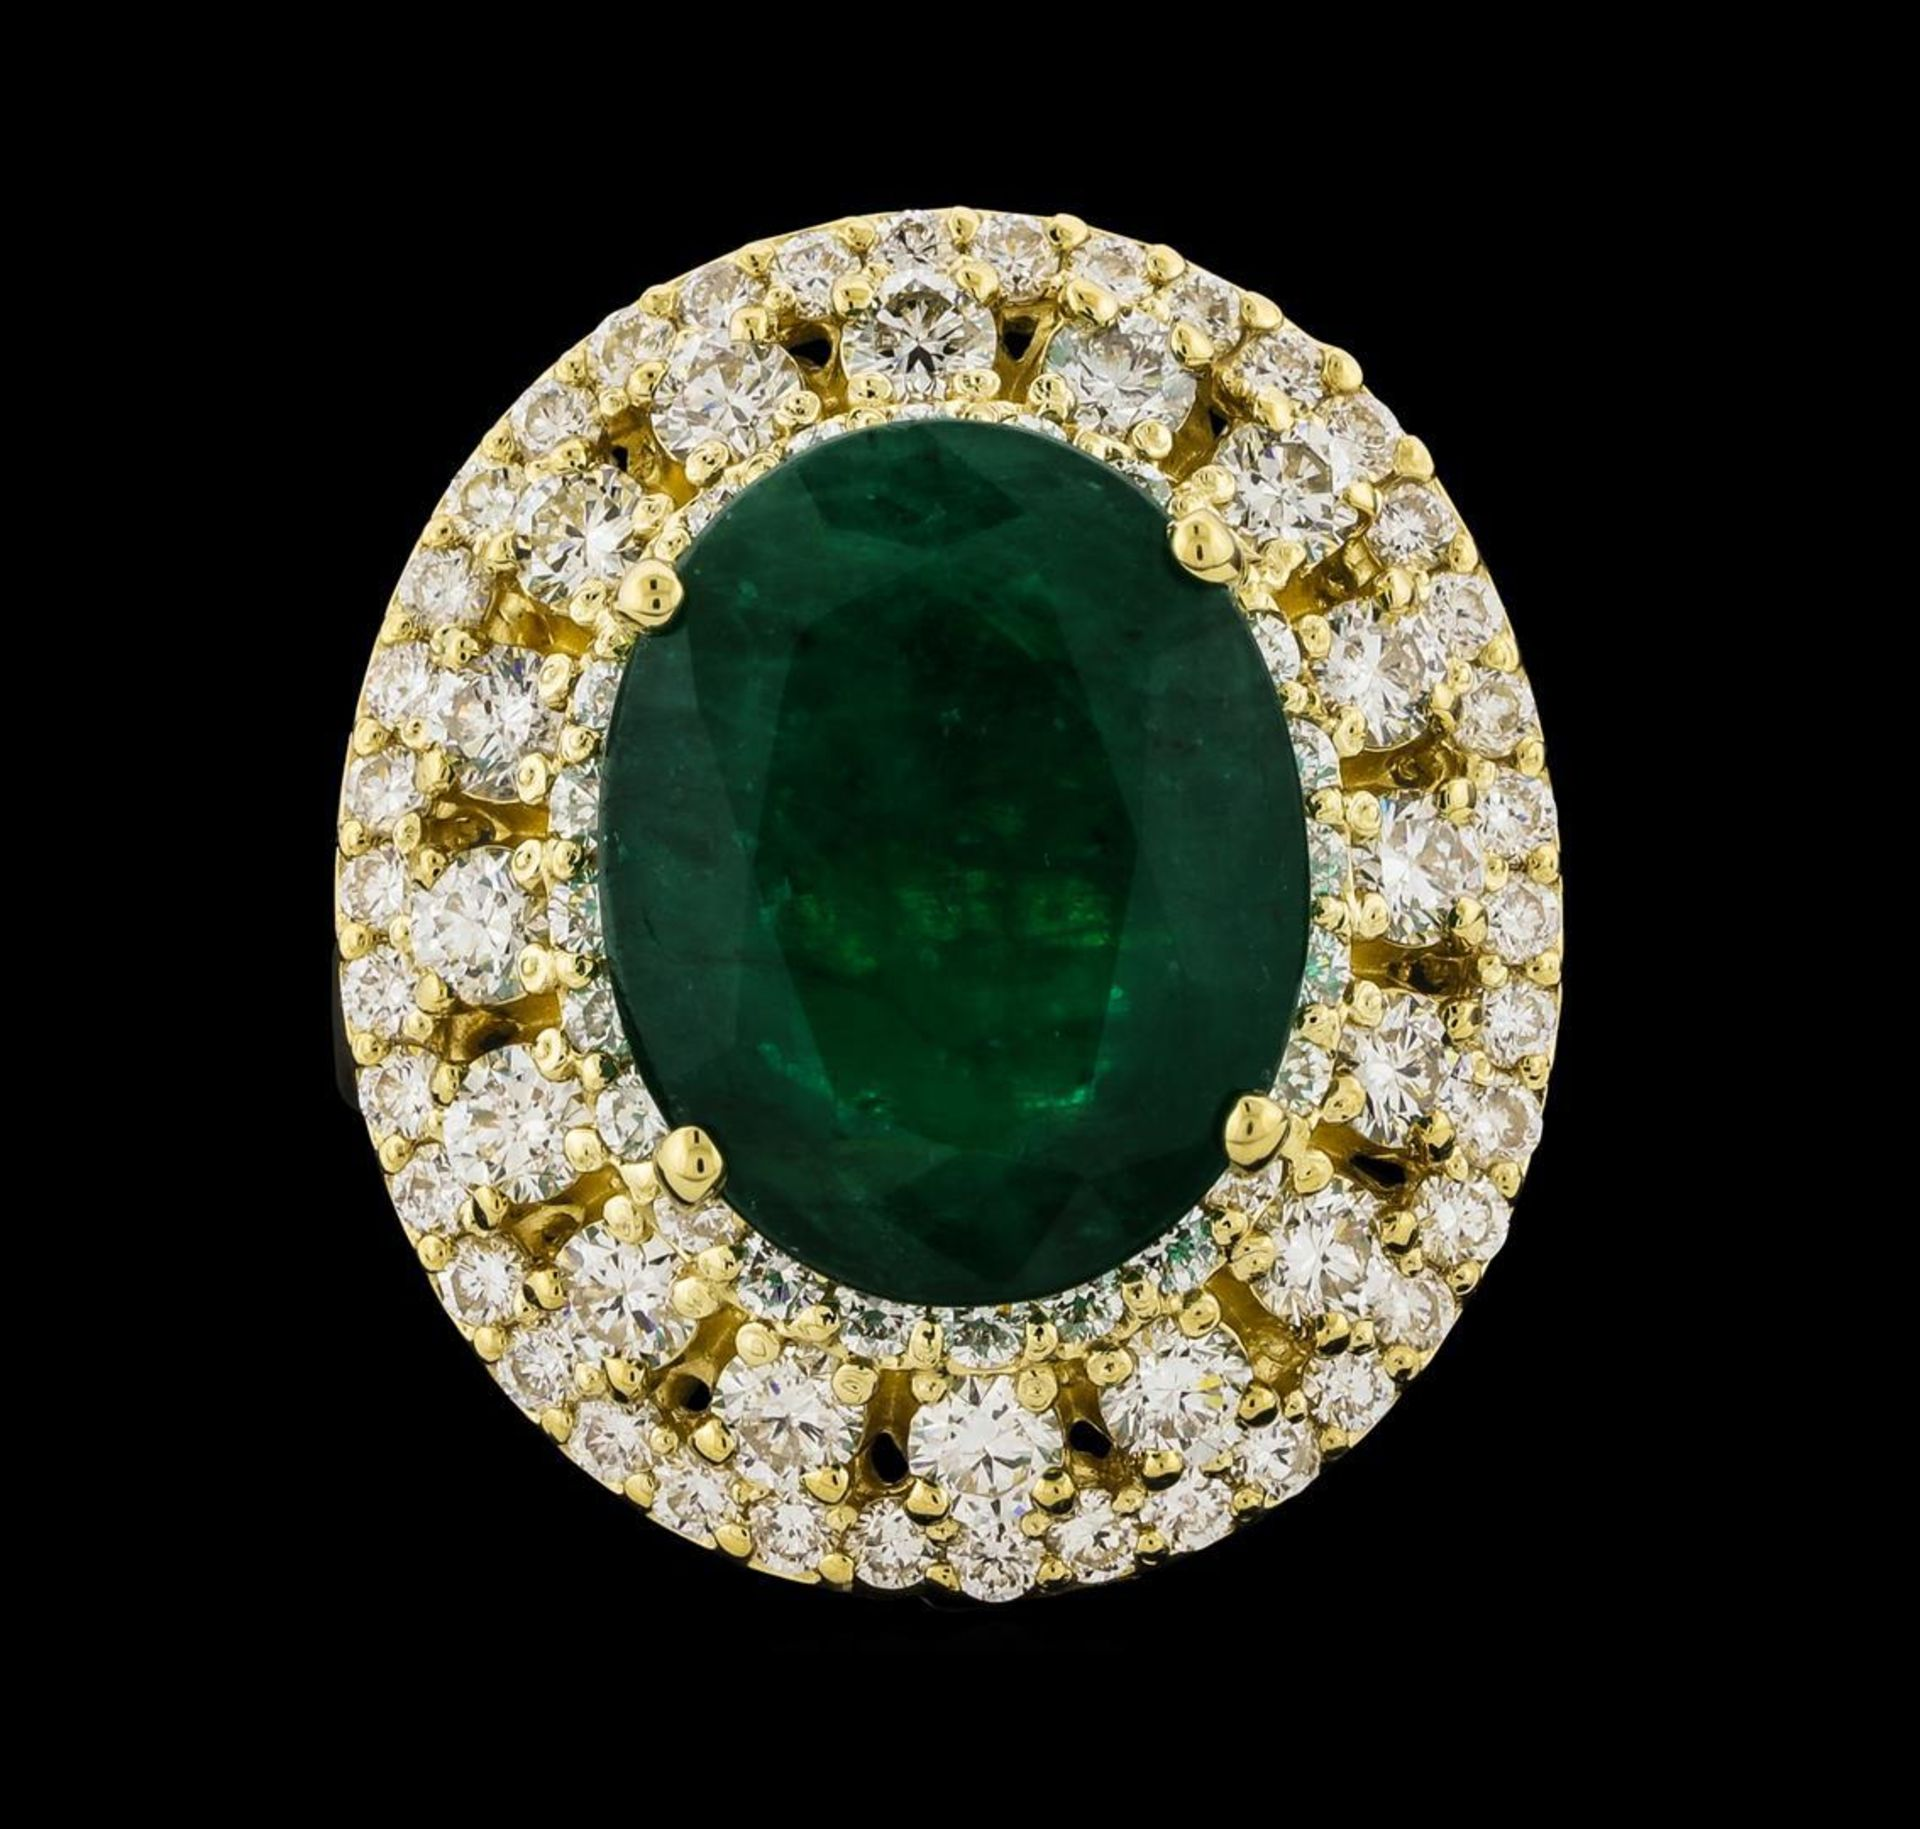 6.63 ctw Emerald and Diamond Ring - 14KT Yellow Gold - Image 2 of 5